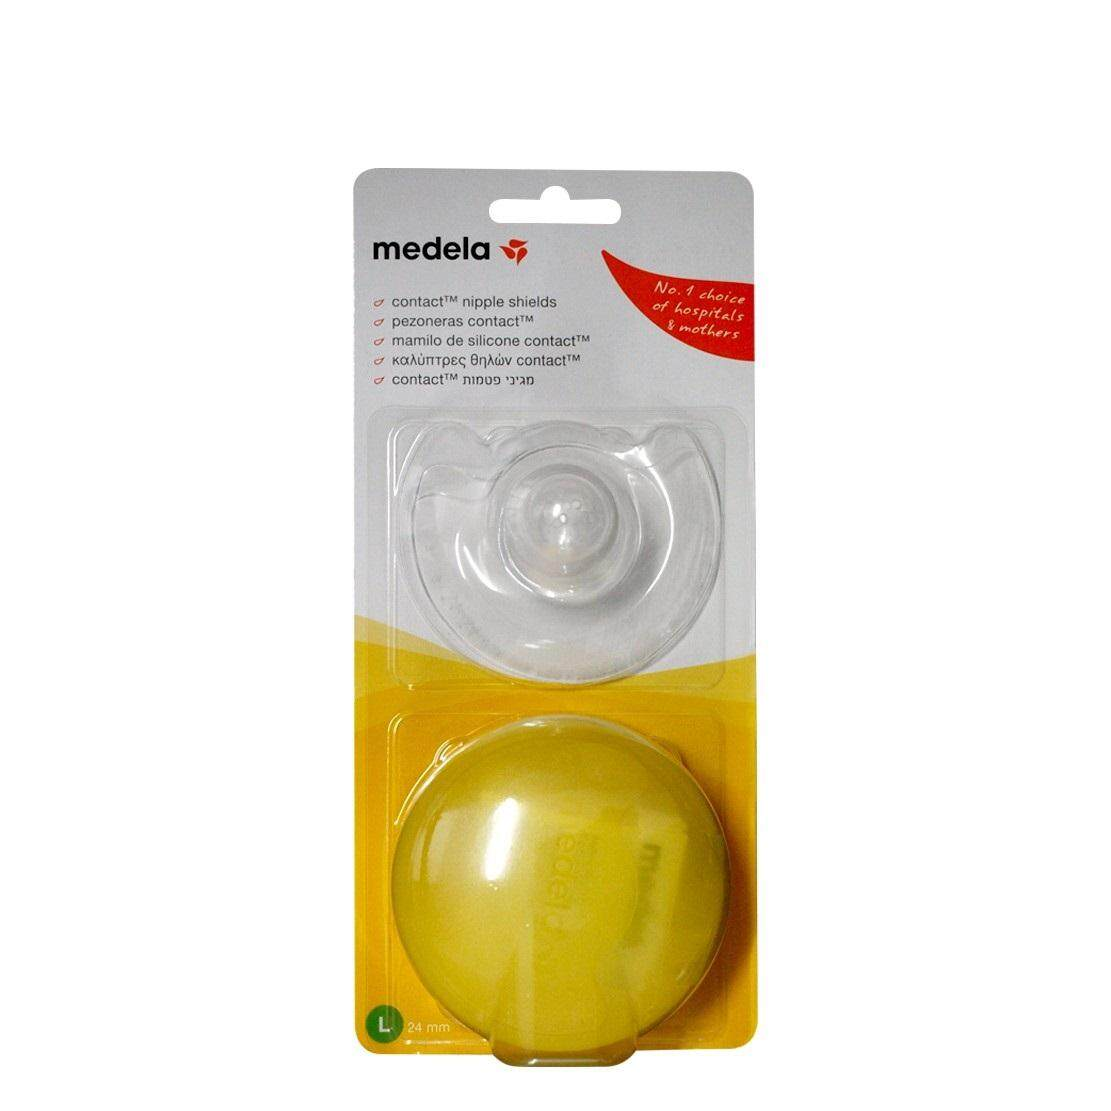 [MEDELA] Contact Nipple Shields - 24mm (Large) *1 Pair*